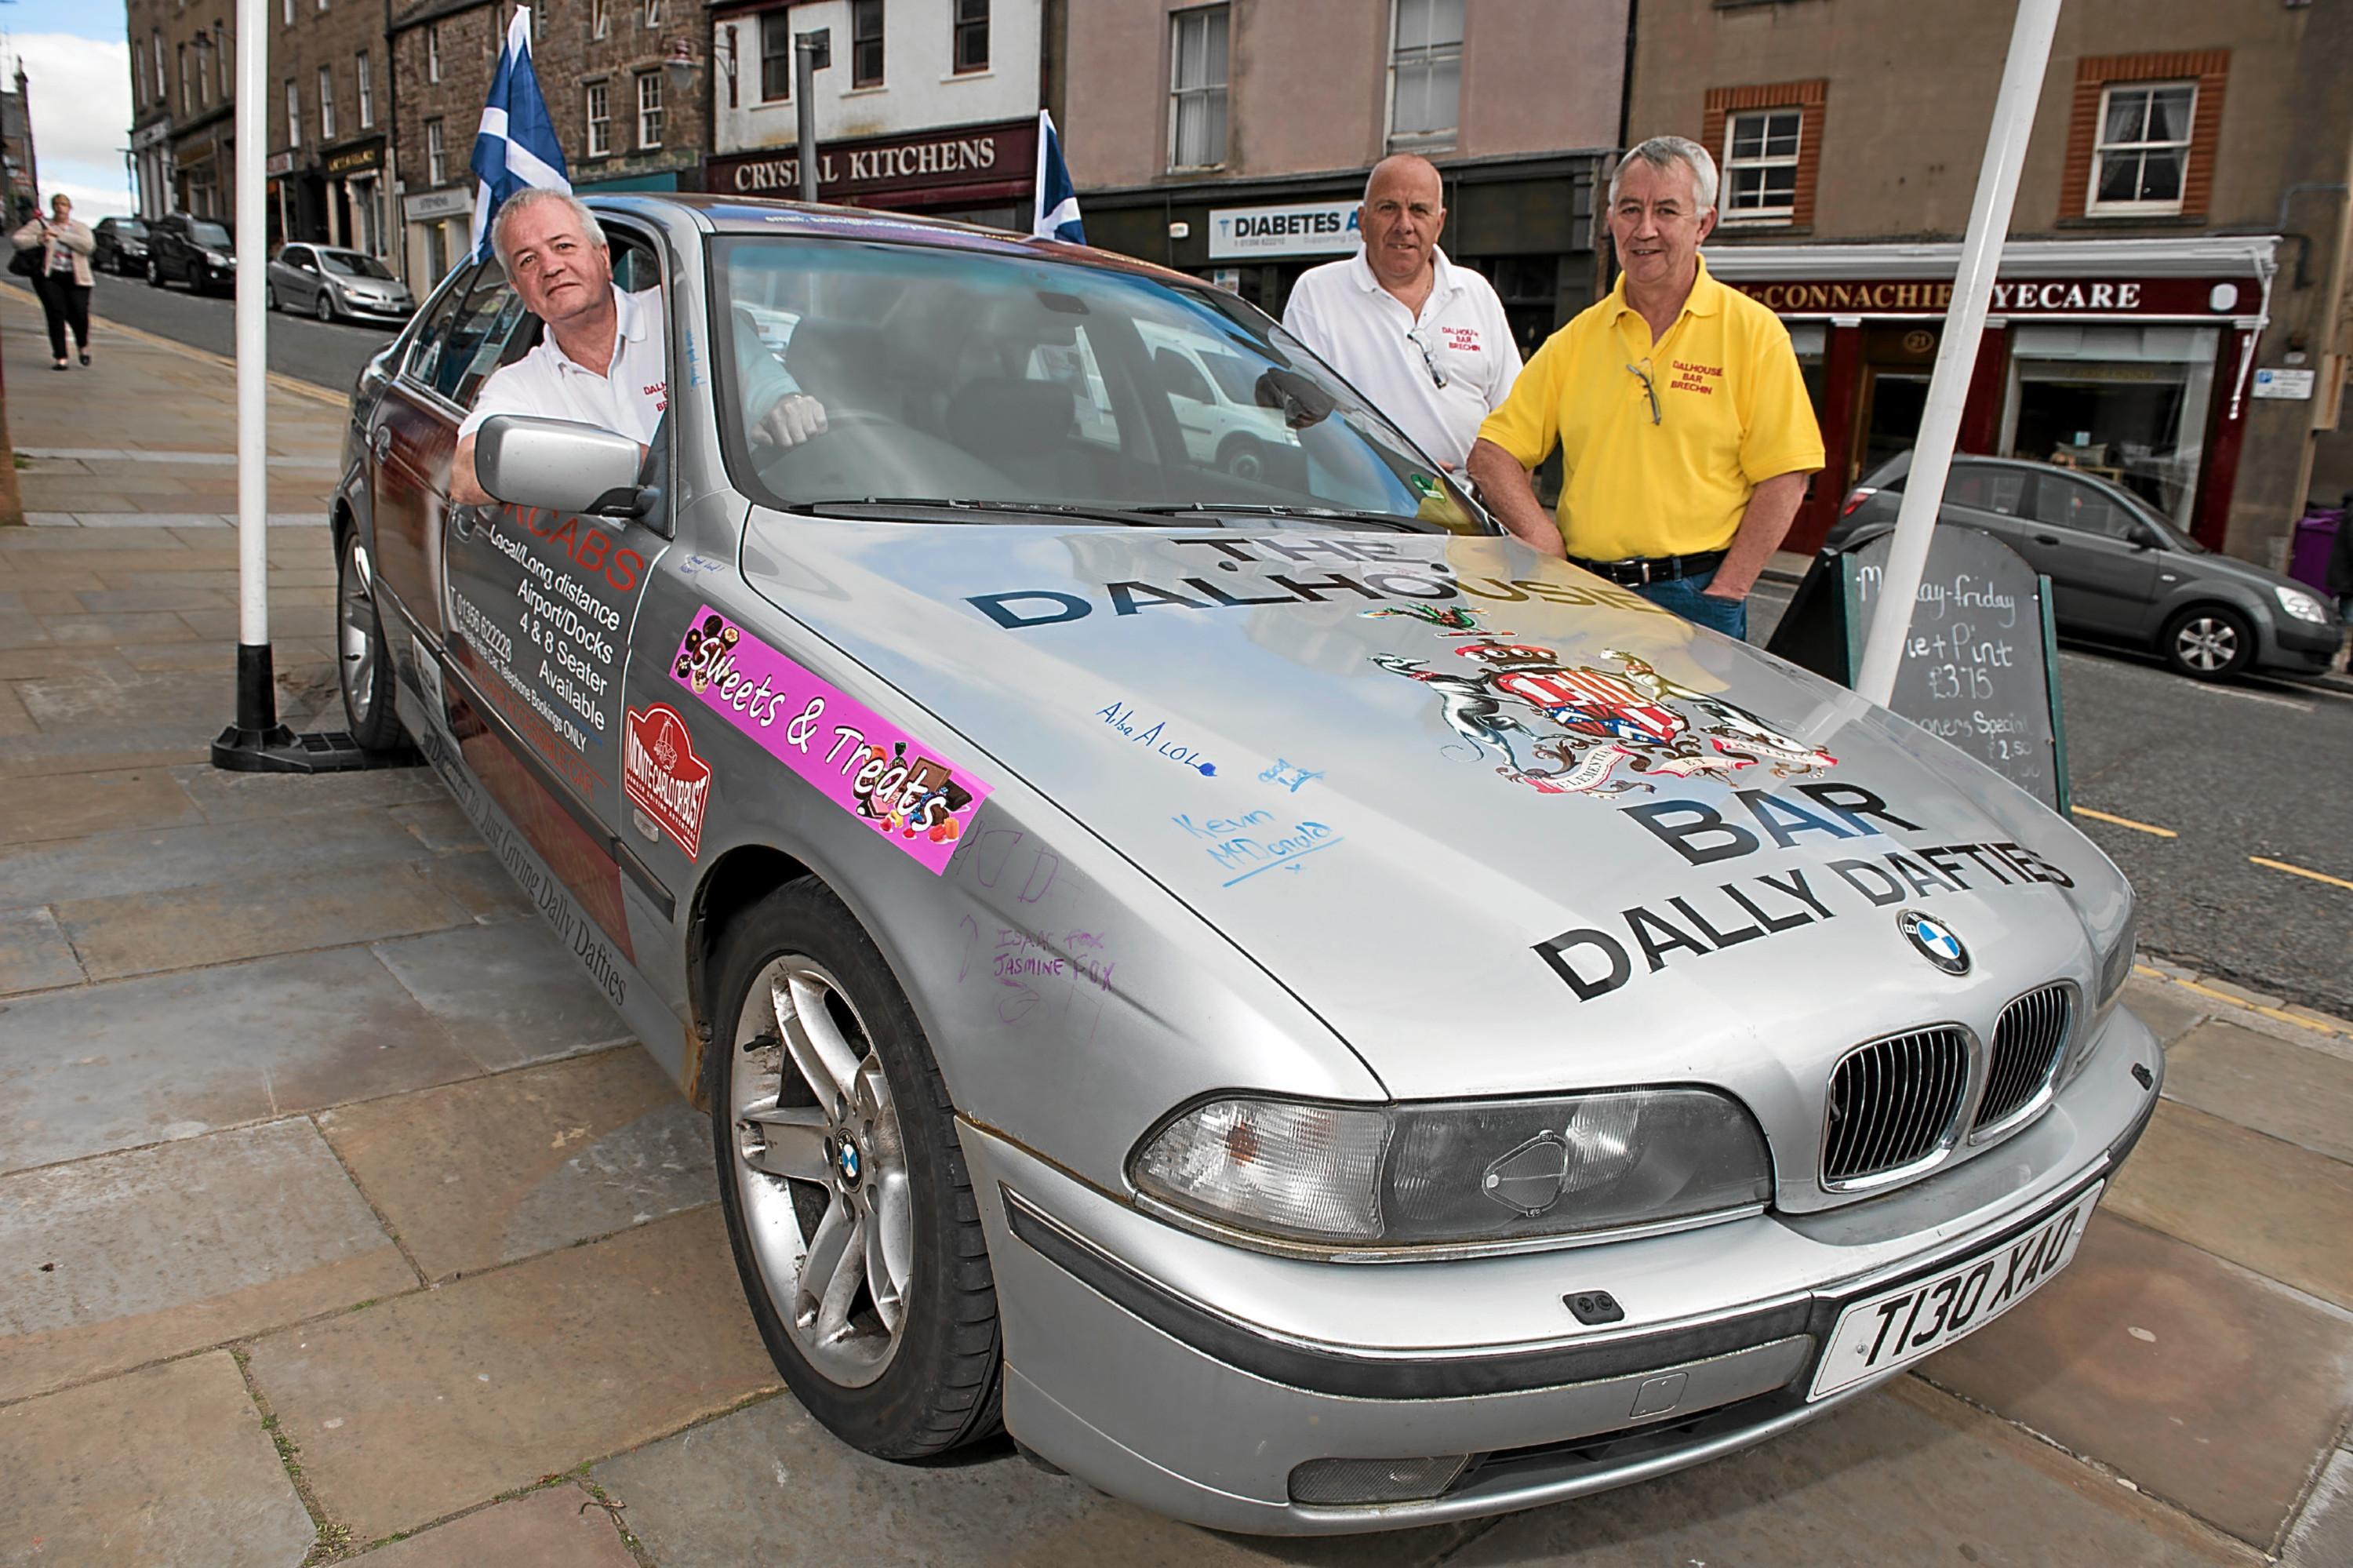 Andy Downie, Bruce Bremner, Brian McCombie and Tony Smith (not pictured) will be setting off on the 1st of June from Brechin covering 1600 miles while raising funds for five local good causes.